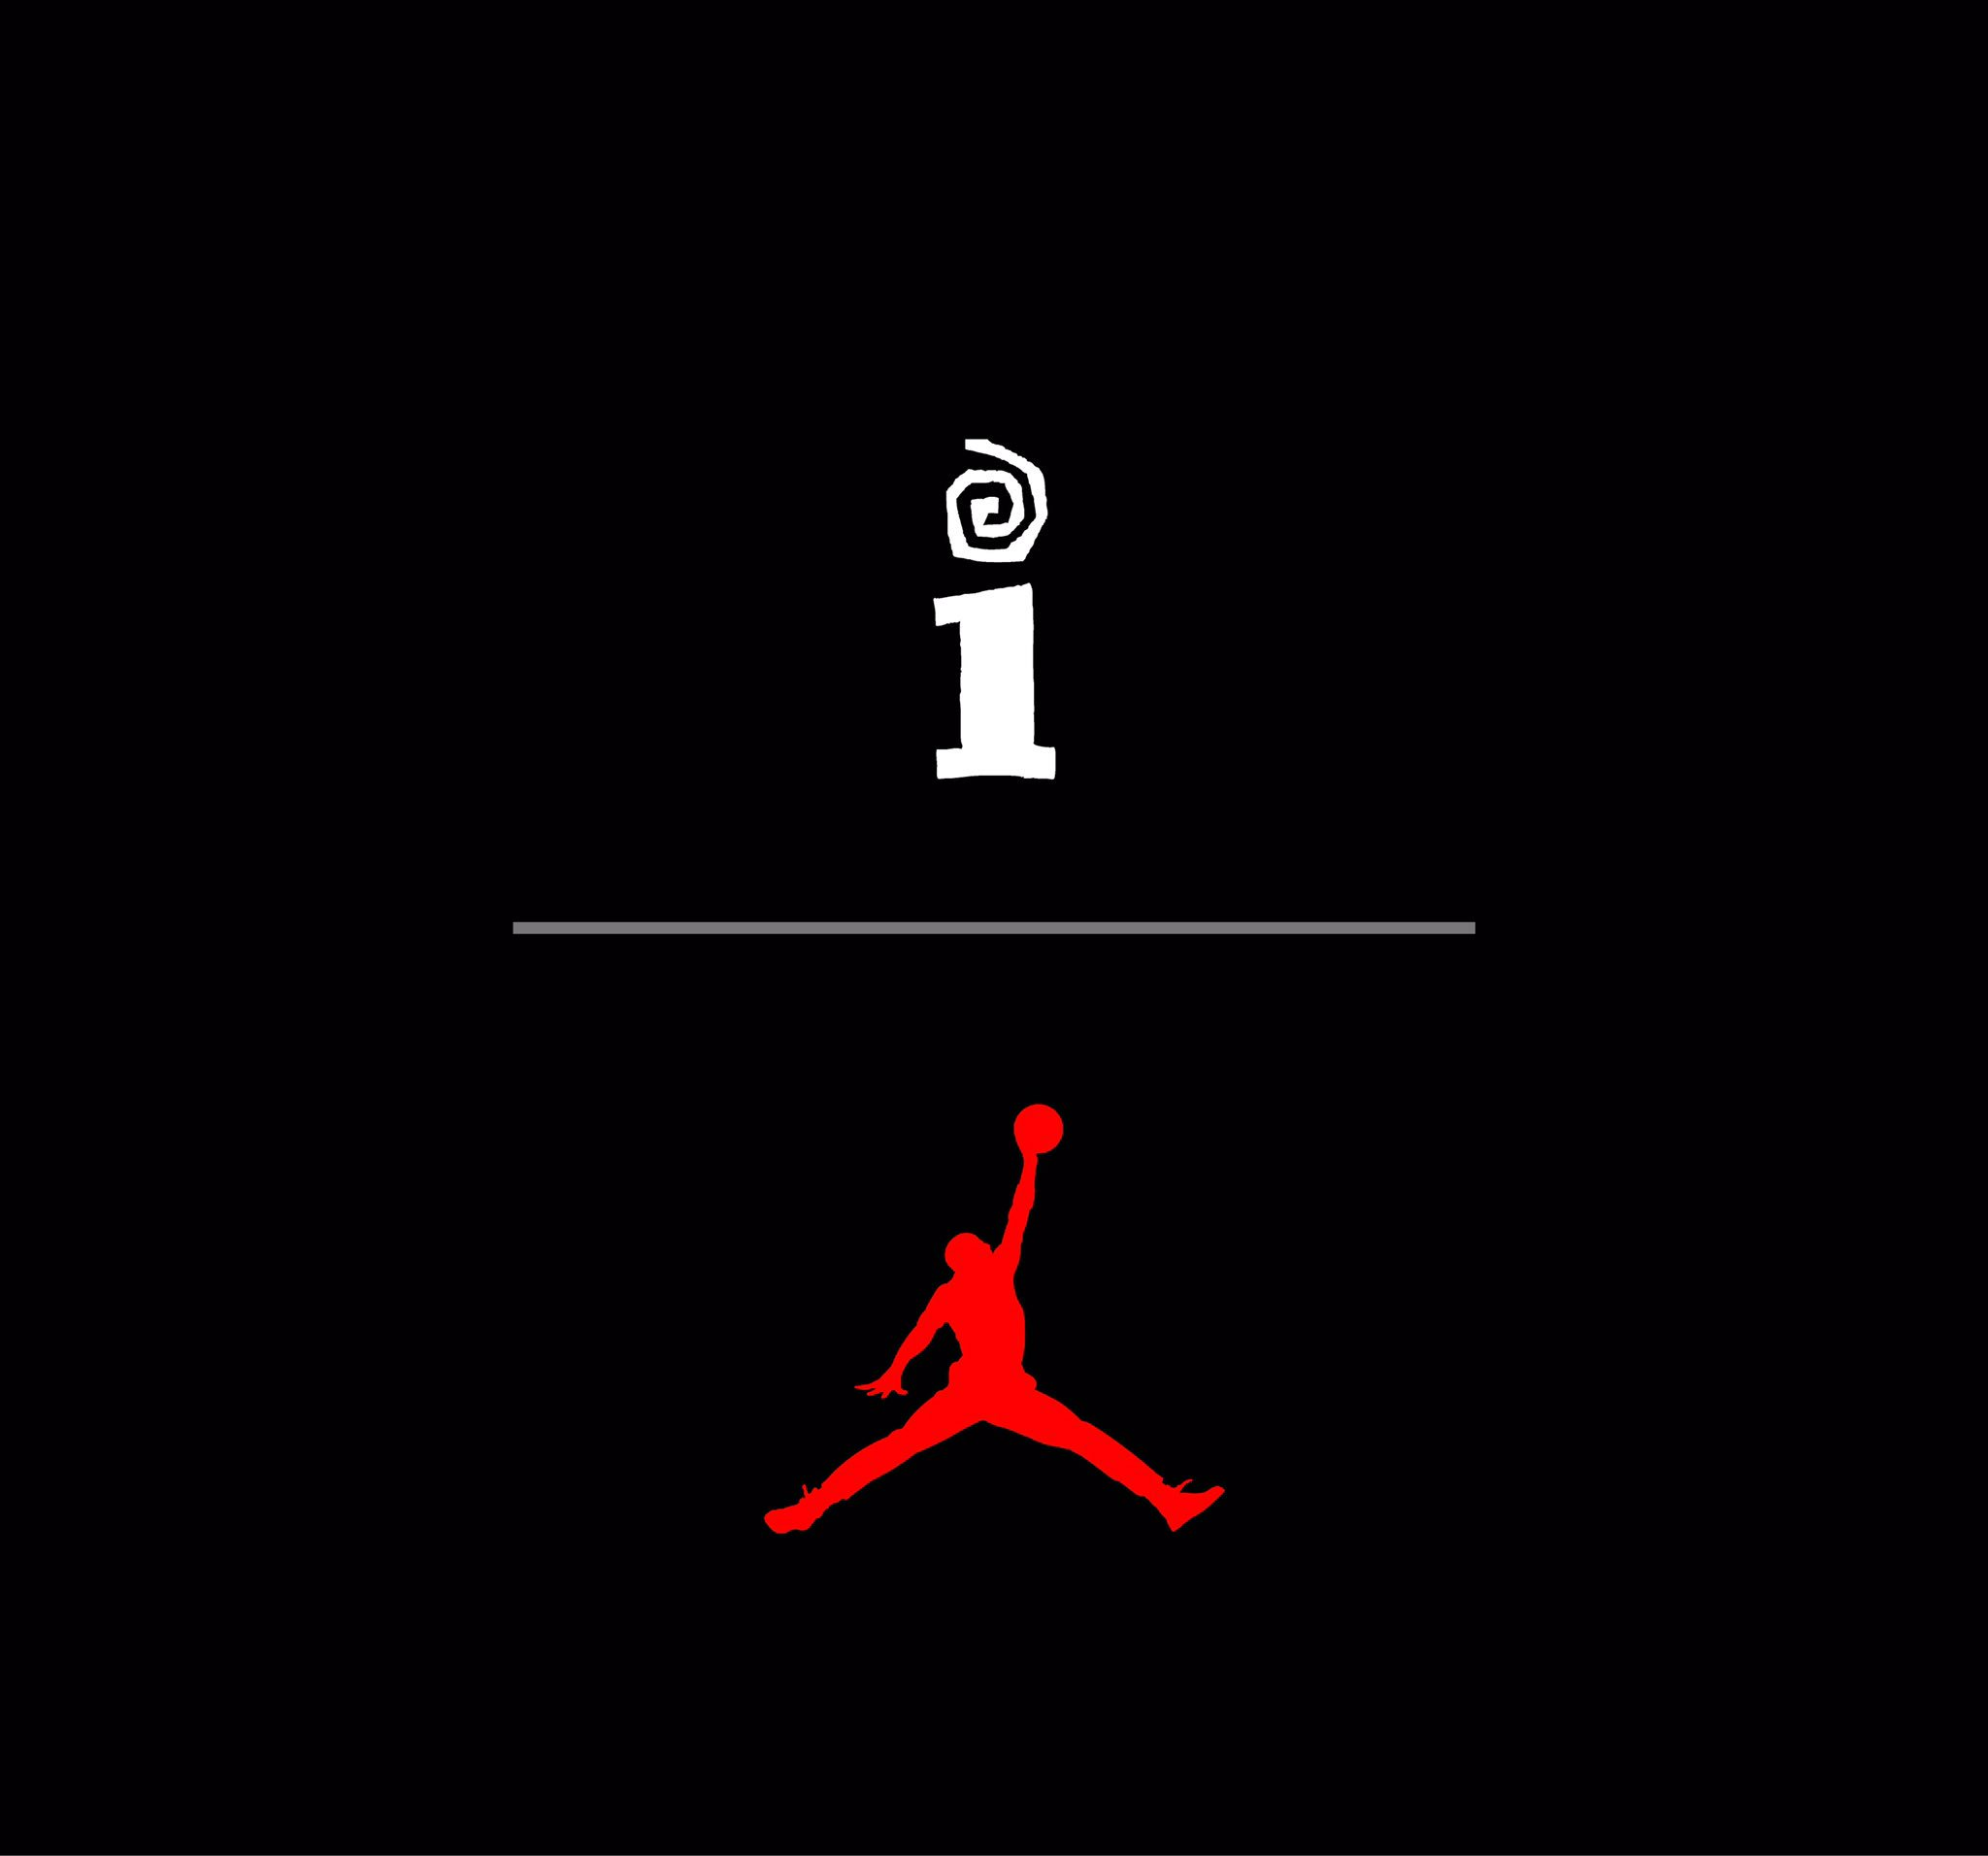 Hear the sounds of our collab with @Jumpman23 now on @AppleMusic https://t.co/4YLAEJ9sTT https://t.co/oRJxYrepEj